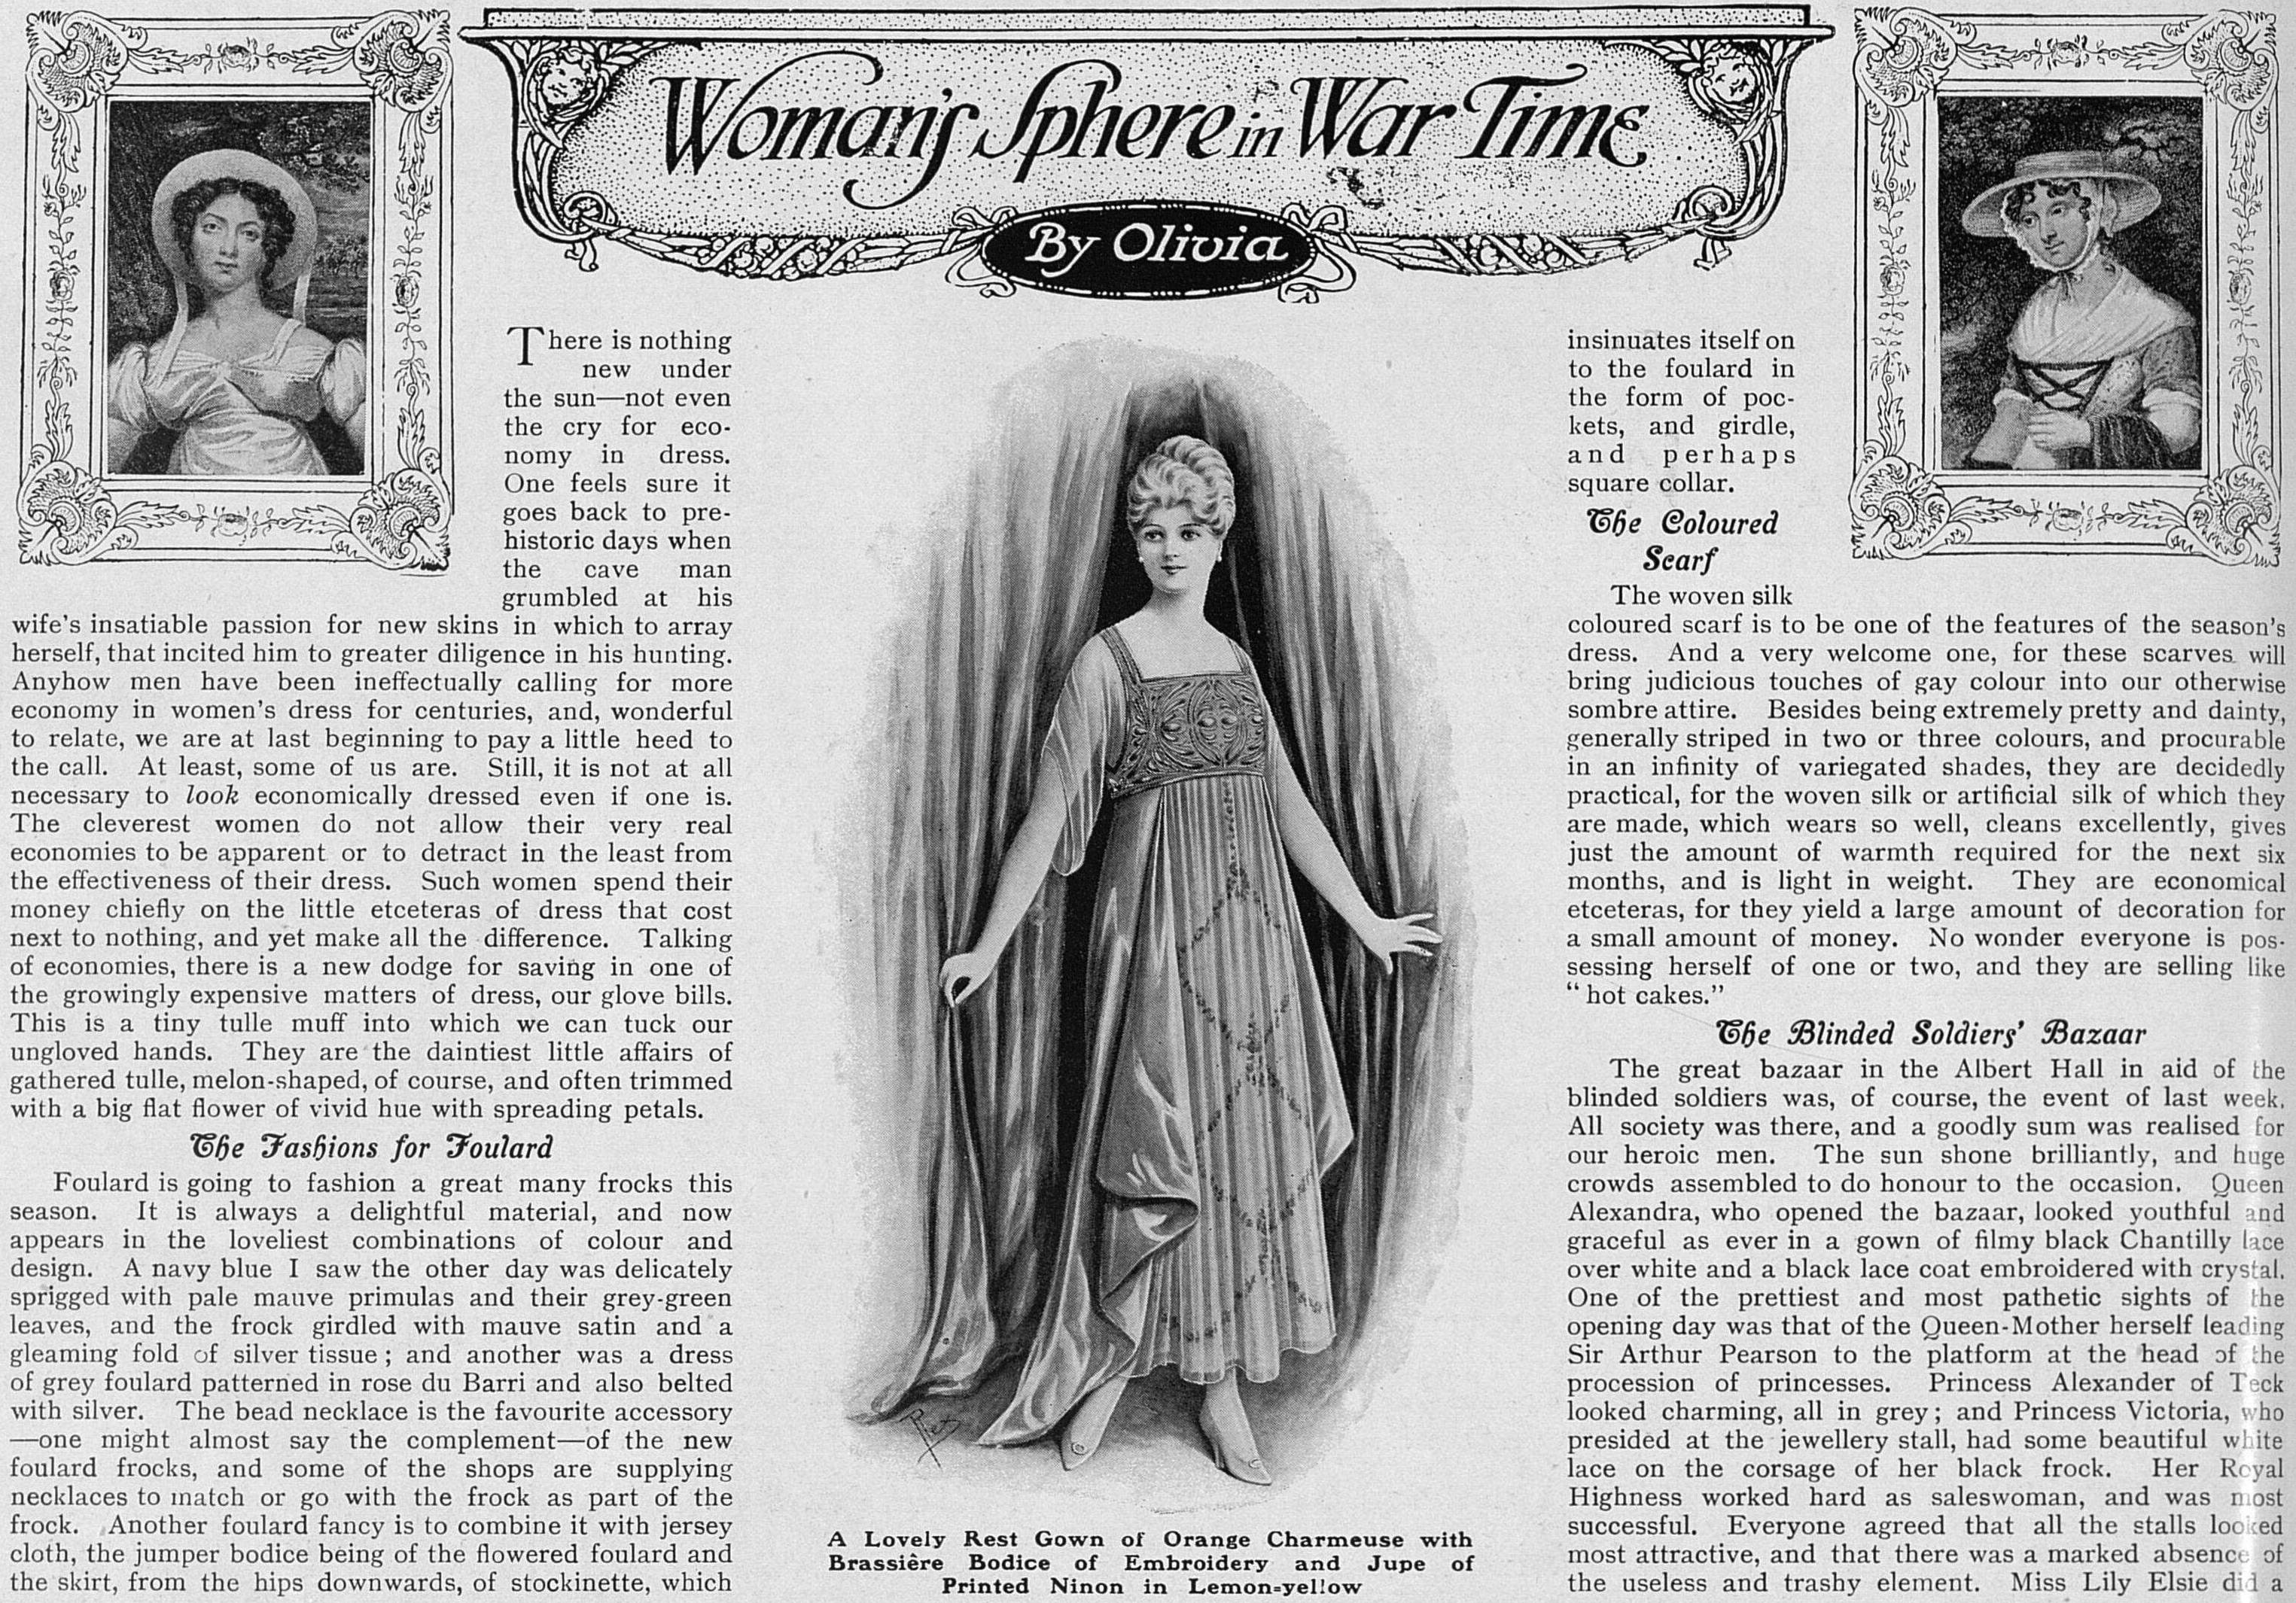 WomansSphereInWarTime_19May1917